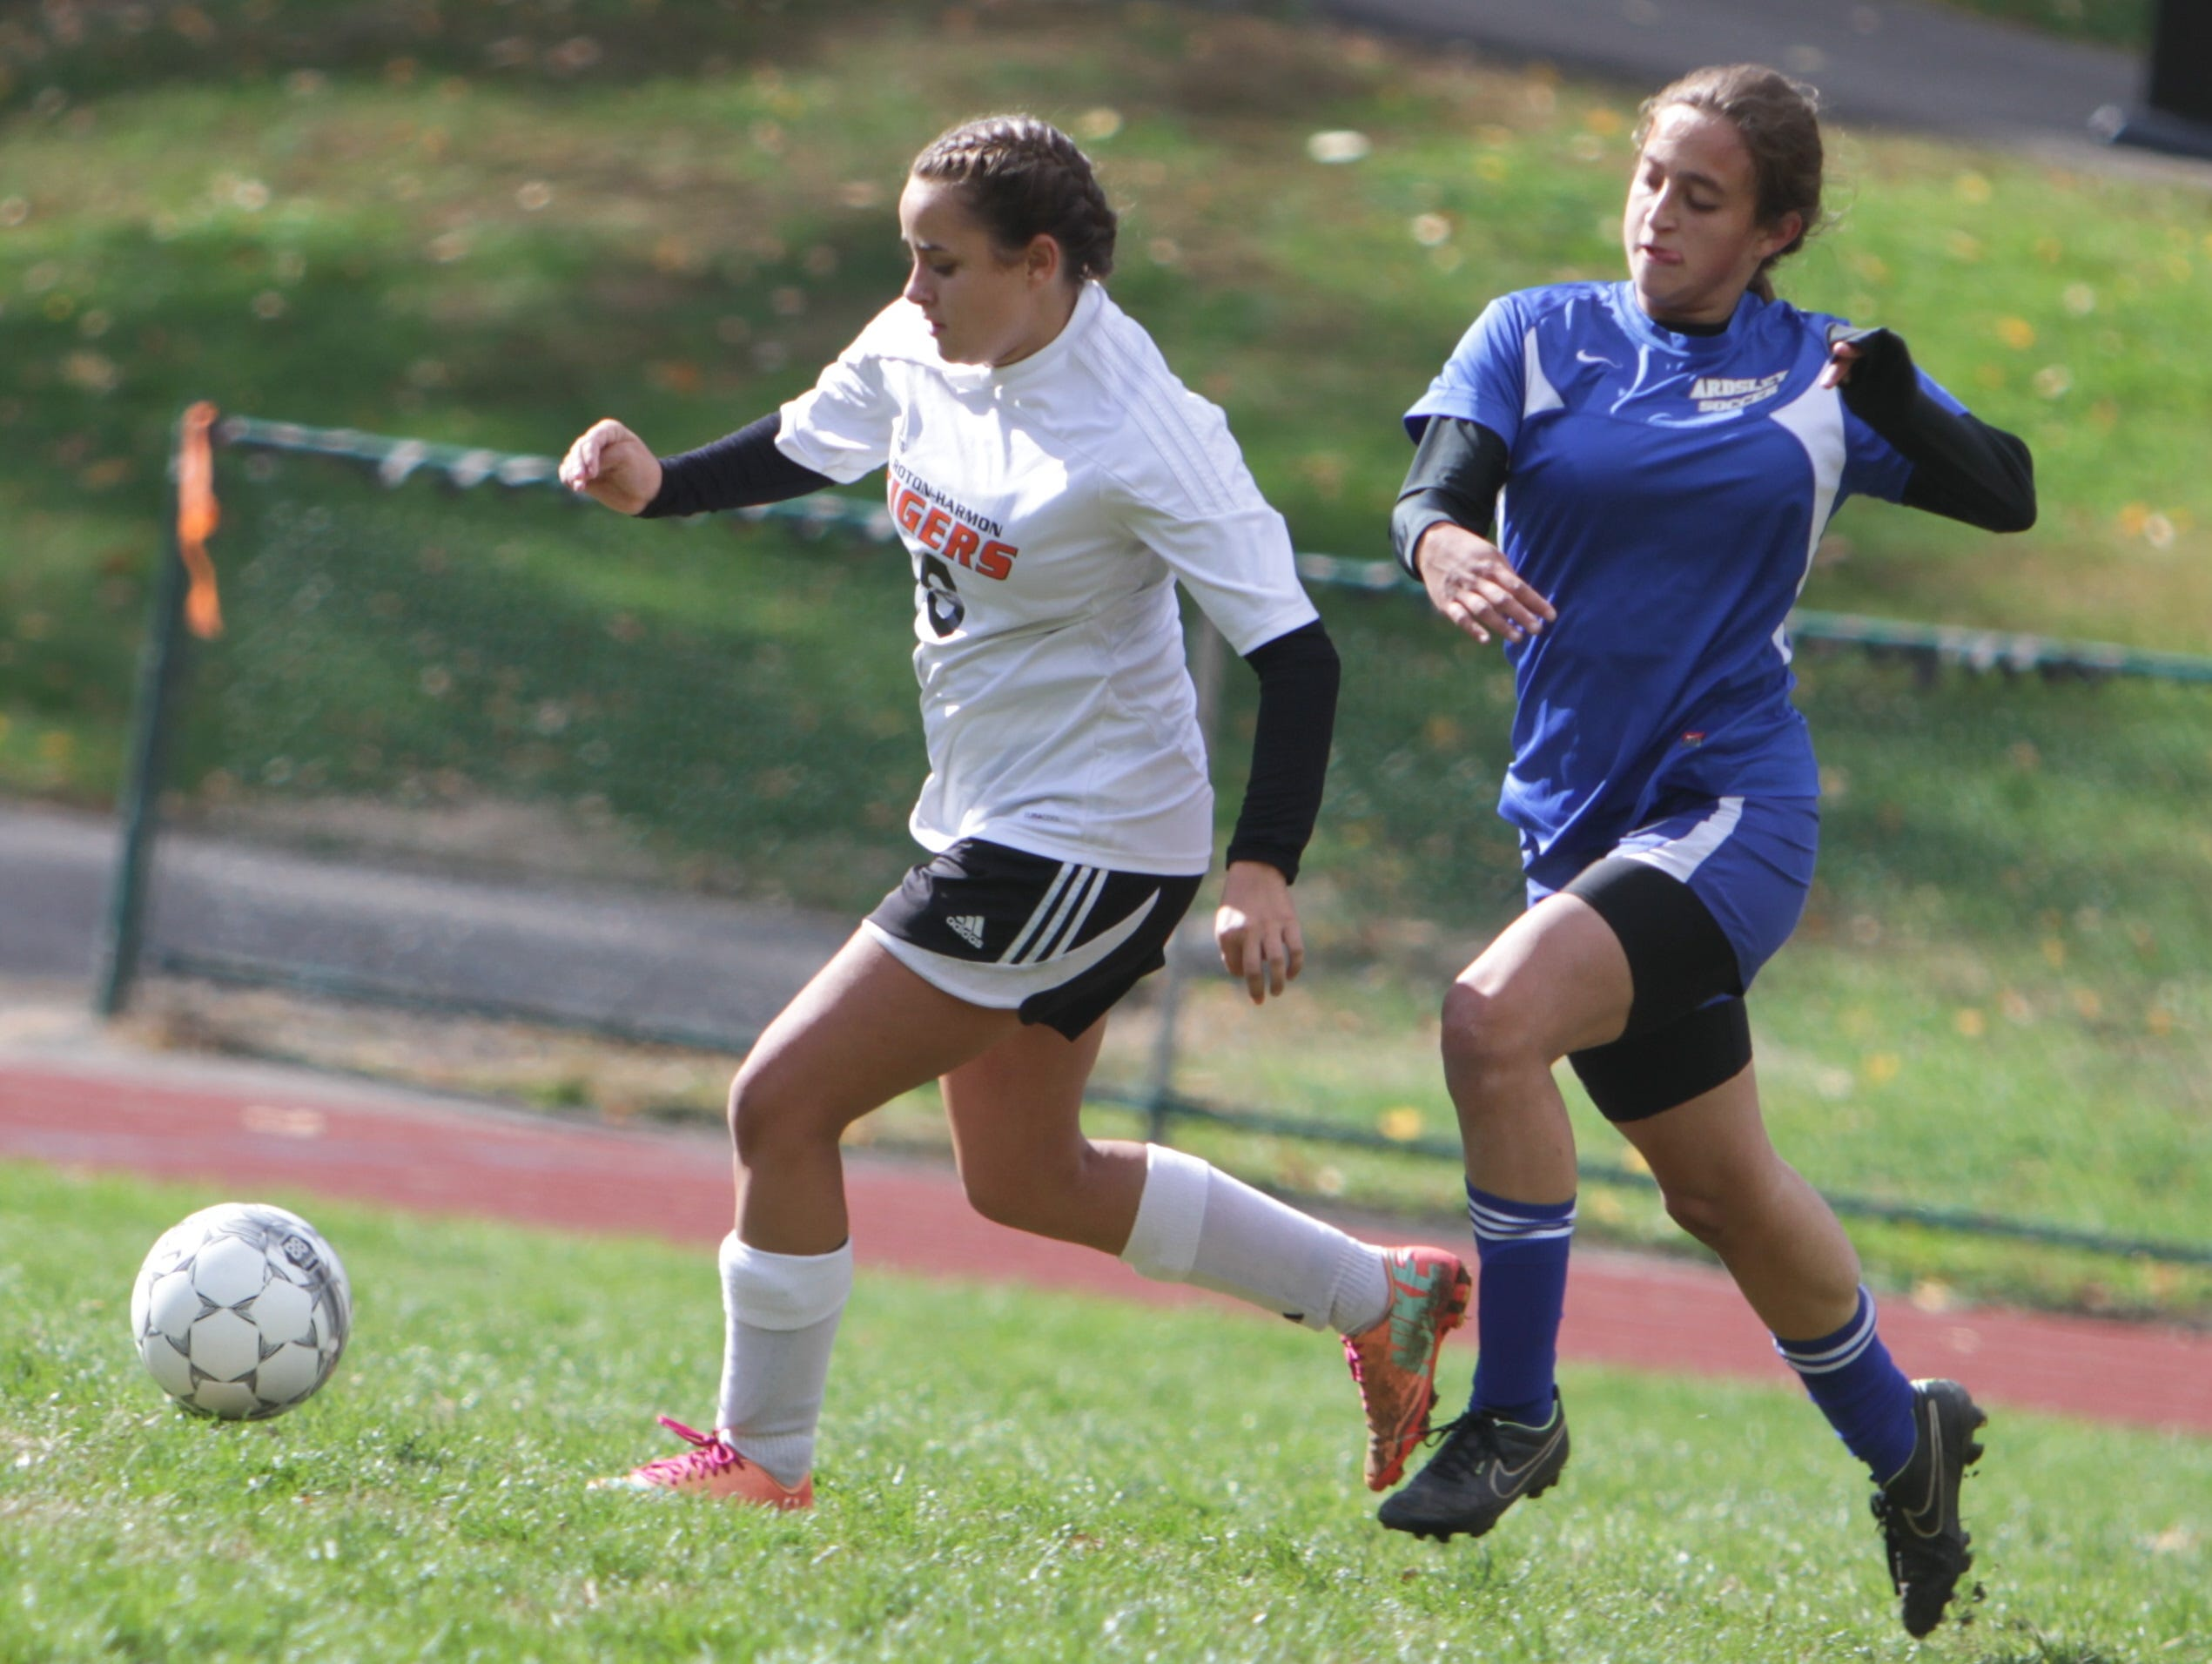 Croton Harmon's Astrella Dacosta and Ardsley's Samantha Torrellas chase after a loose ball during a game at Spencer Field, Croton-on-Hudson on Sunday, October 18, 2015. The match ended in a 2-2 draw.